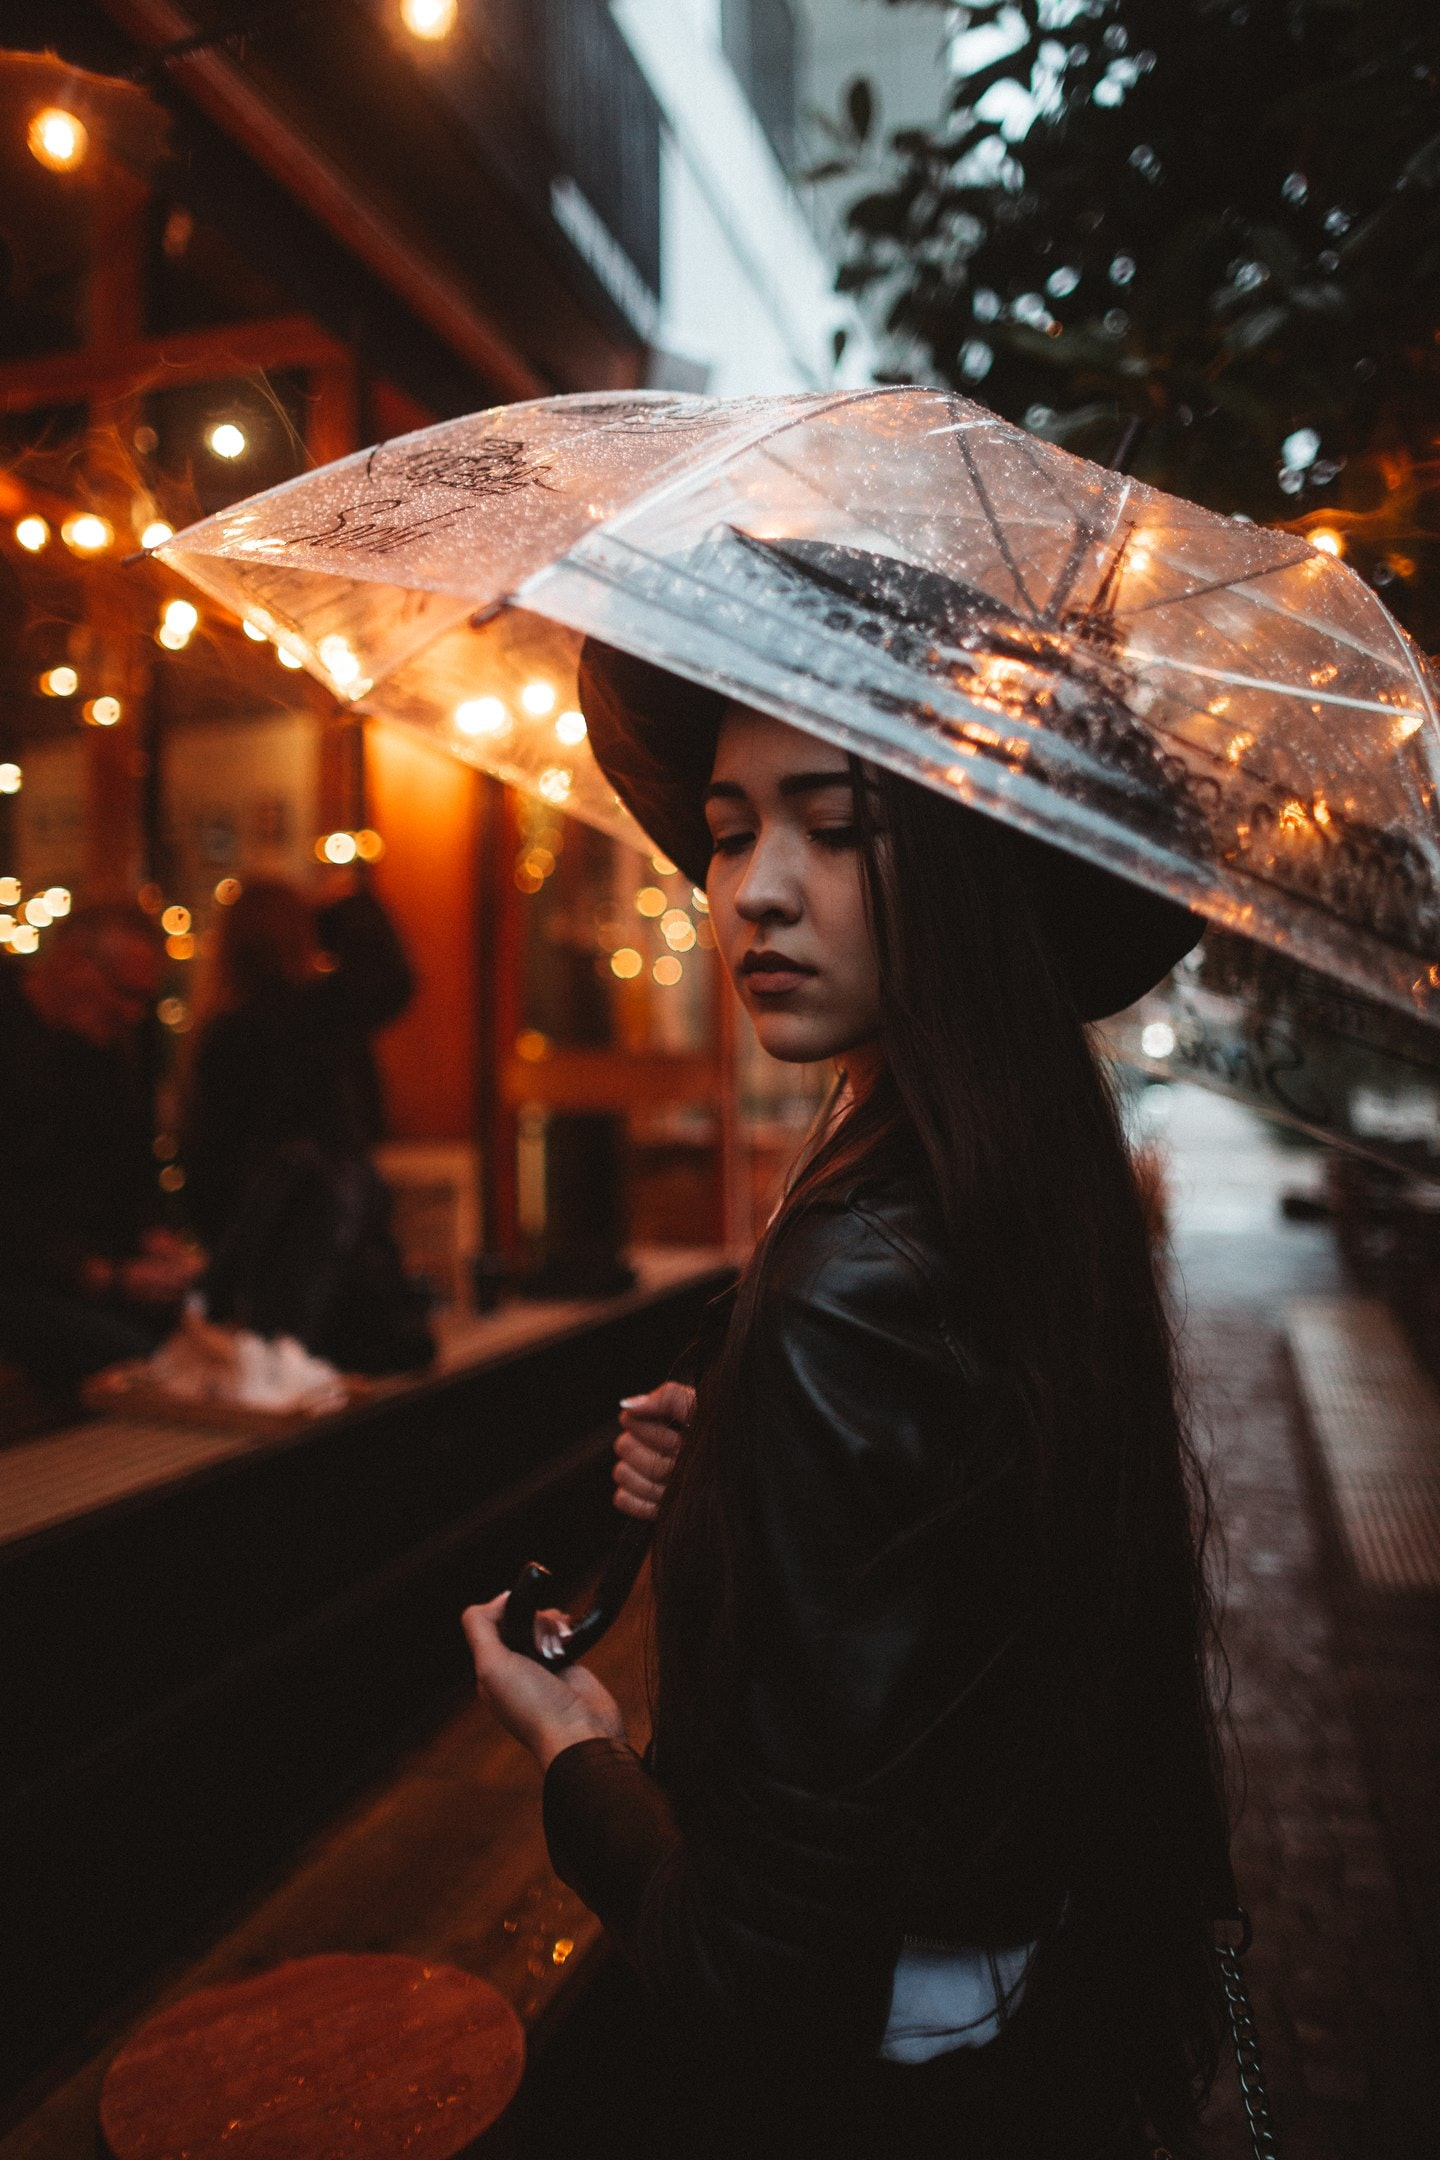 woman wearing black jacket using umbrella